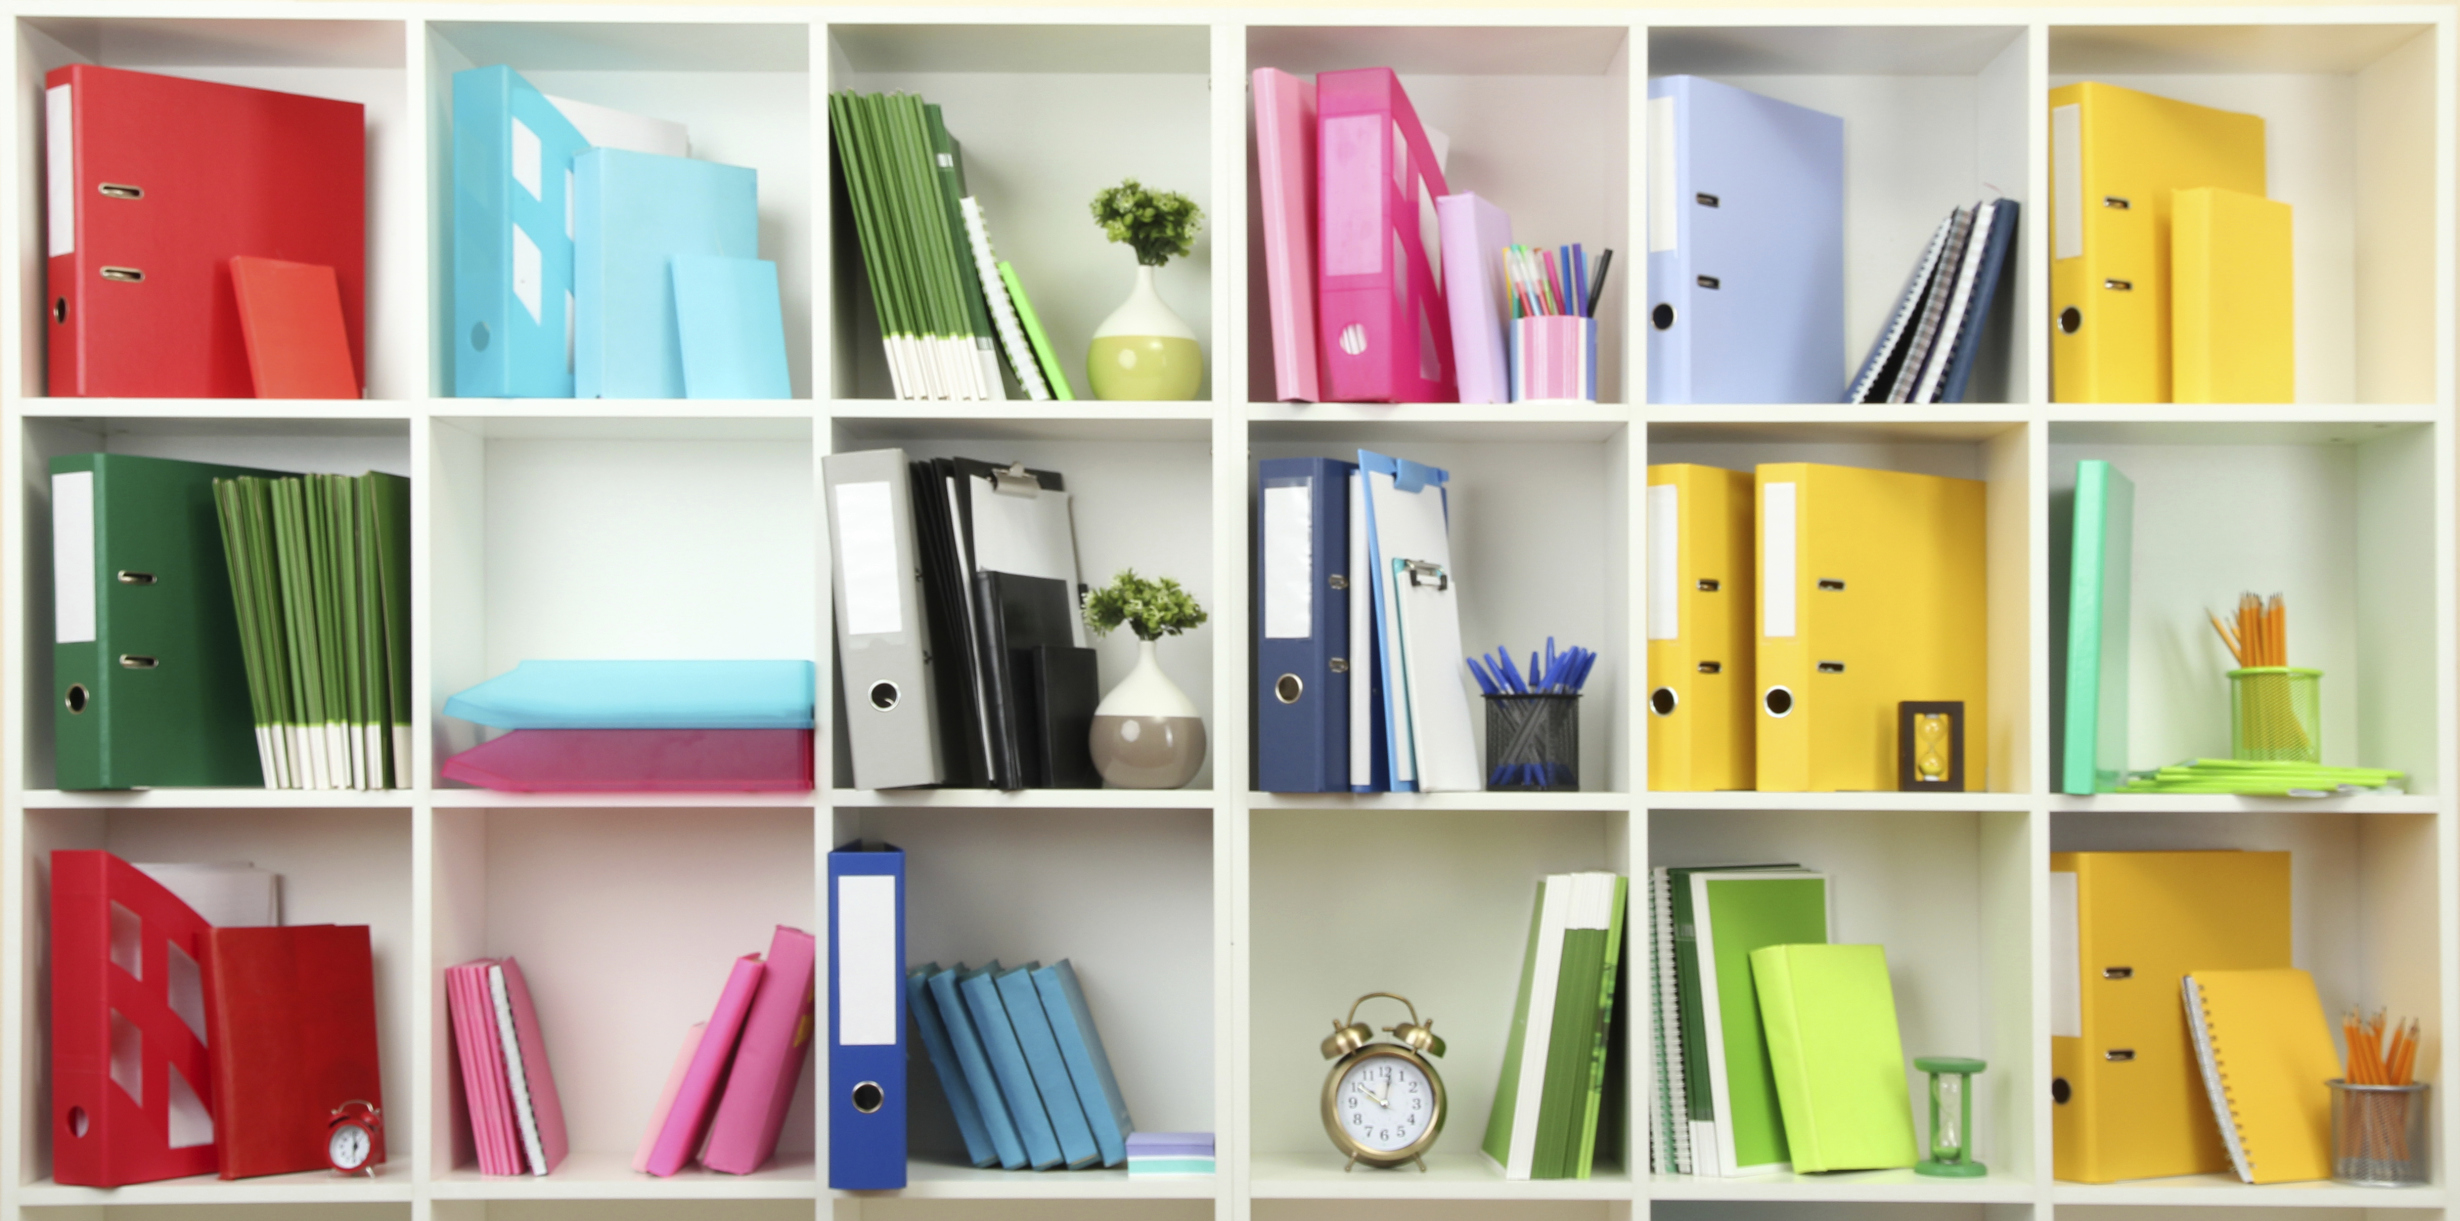 quick_tips_make_organizing_your_home_fun_and_exciting_Cook_Portable_Warehouses